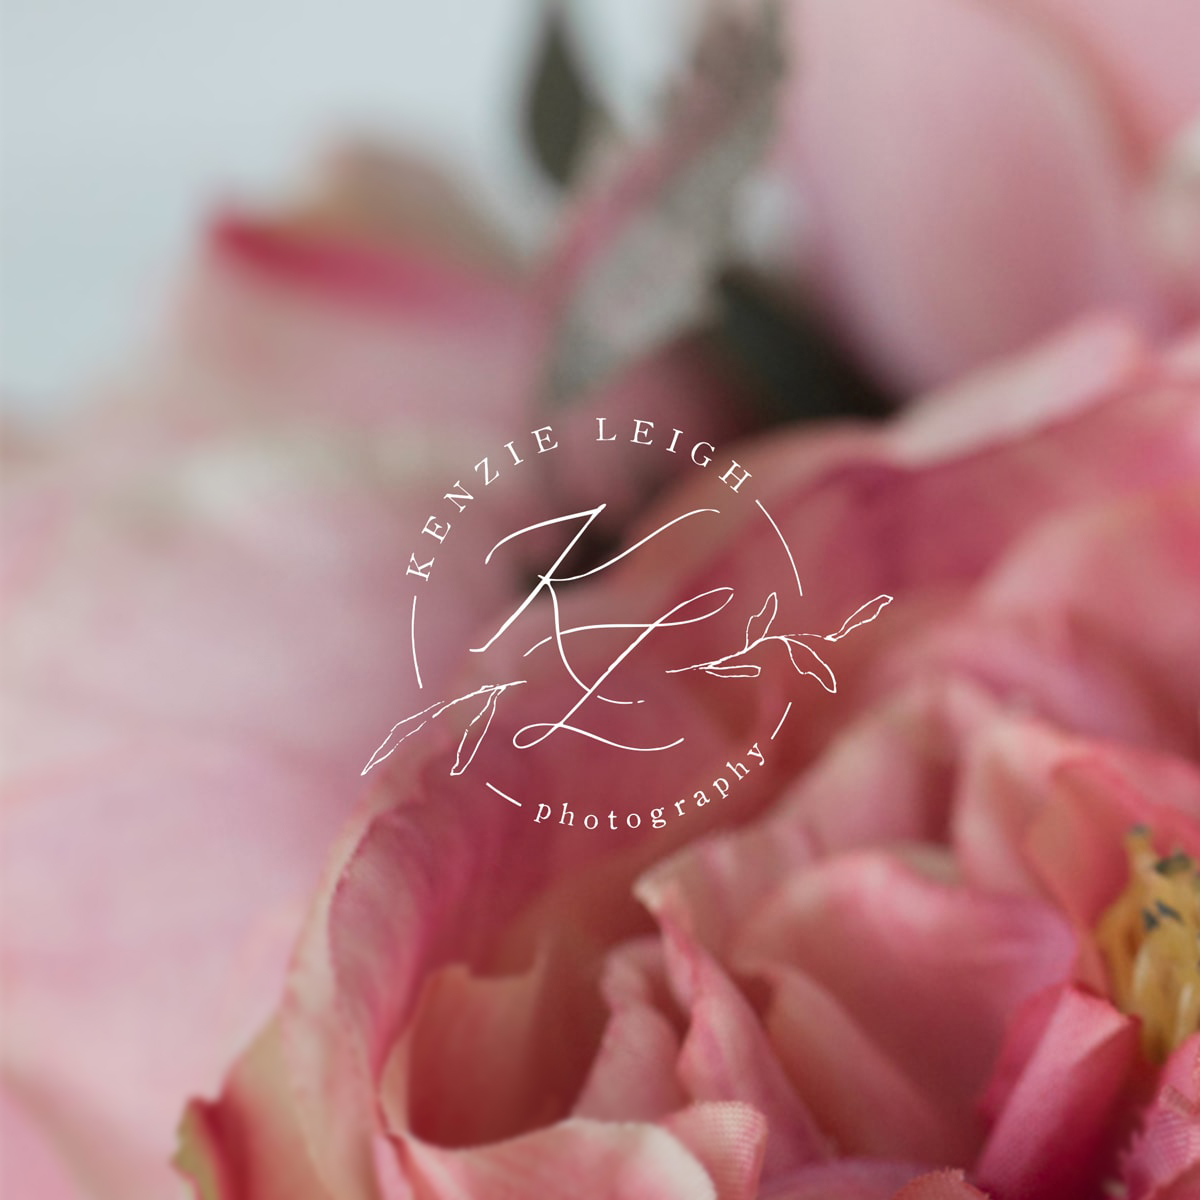 02_KL_PhotographyLogoDesign_Flower-min2.jpg